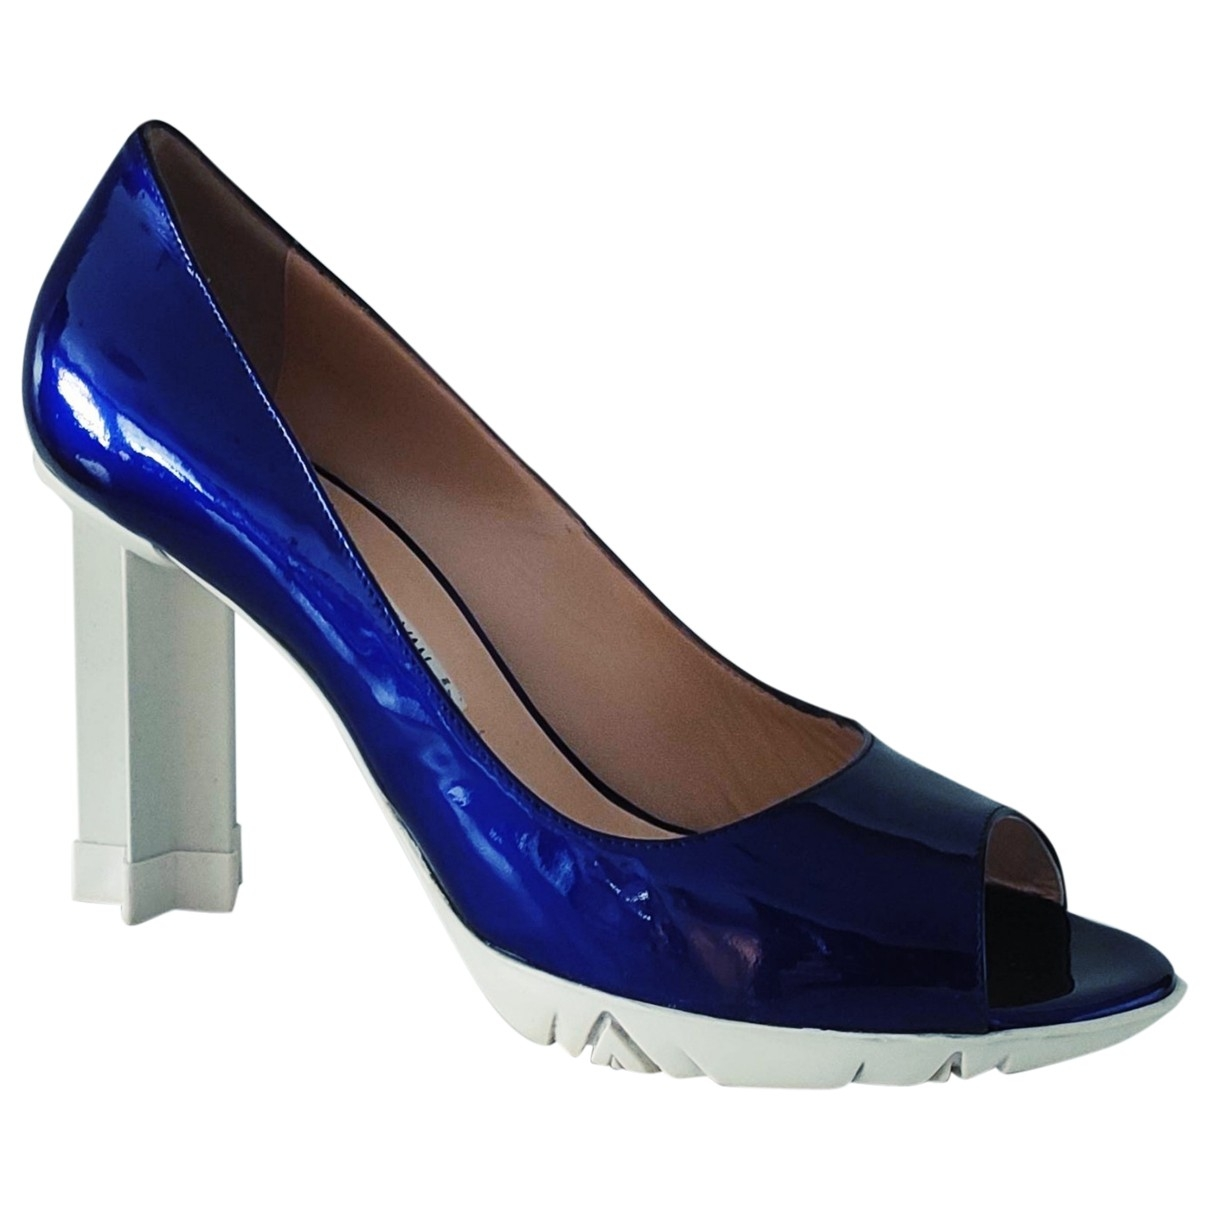 Luciano Padovan \N Blue Patent leather Heels for Women 40 EU